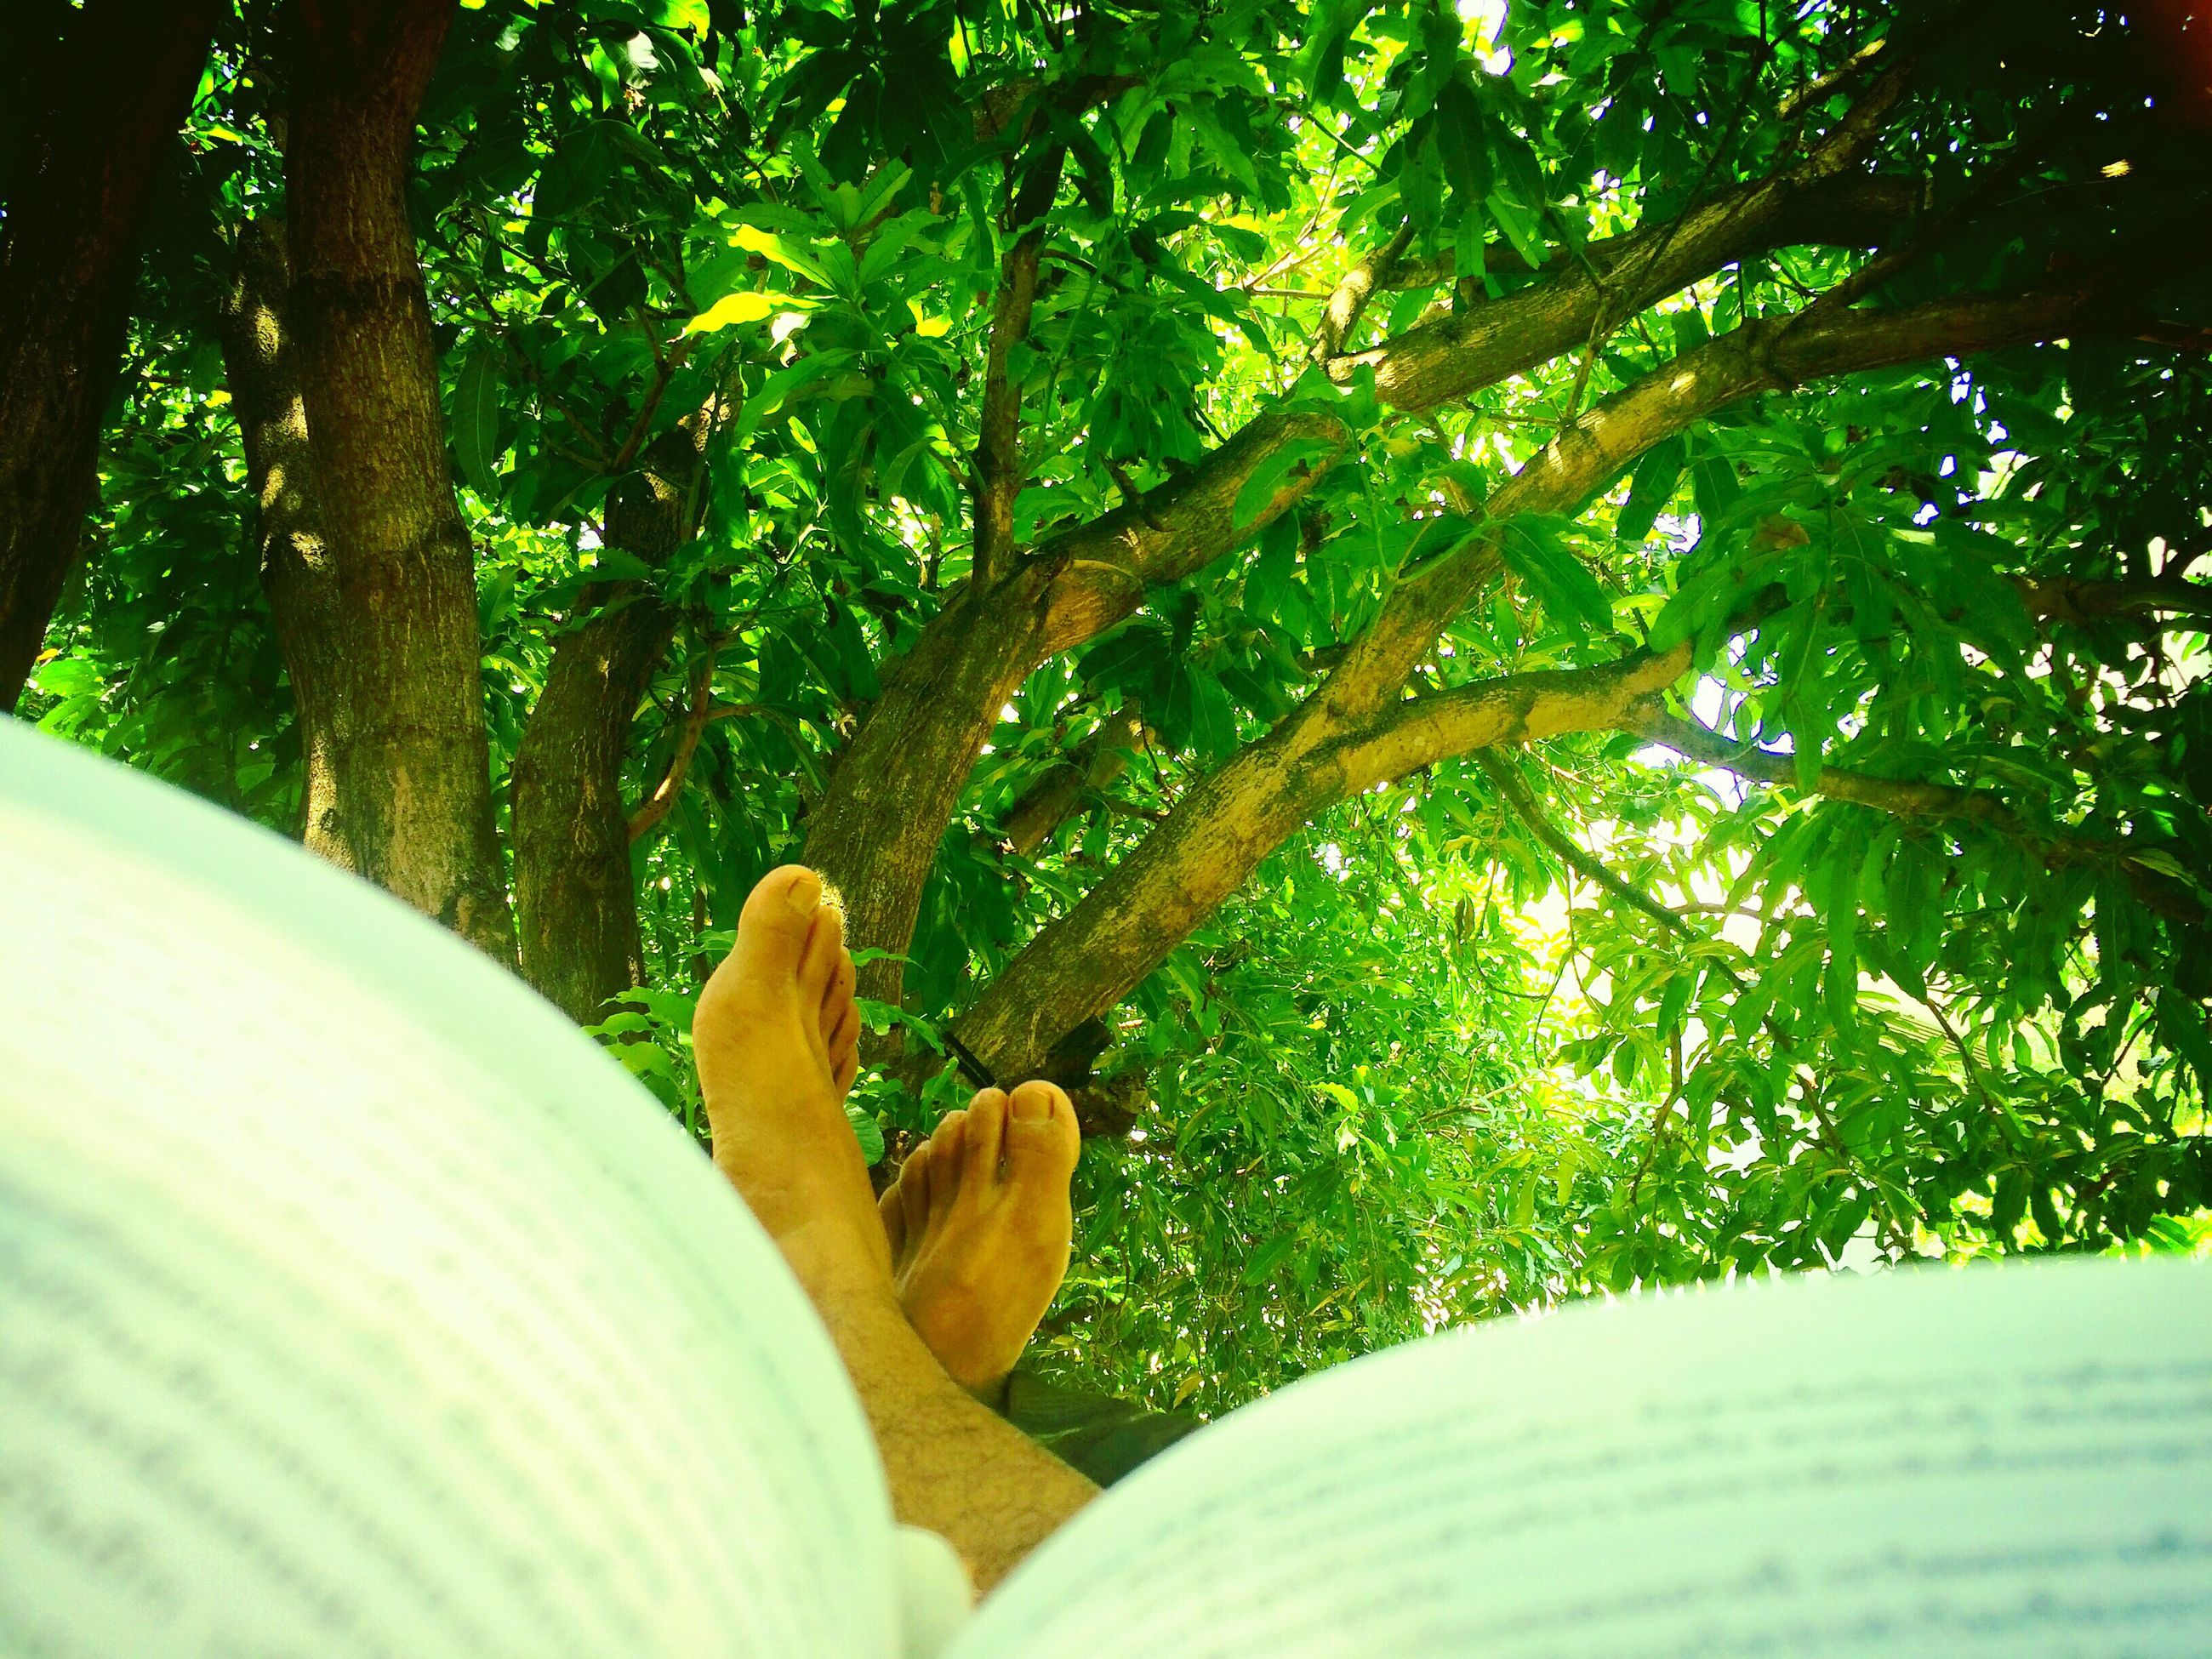 real people, human leg, human body part, one person, barefoot, low section, tree, human foot, personal perspective, day, leisure activity, outdoors, green color, women, growth, lifestyles, nature, one animal, human hand, relaxation, men, grass, close-up, beauty in nature, mammal, people